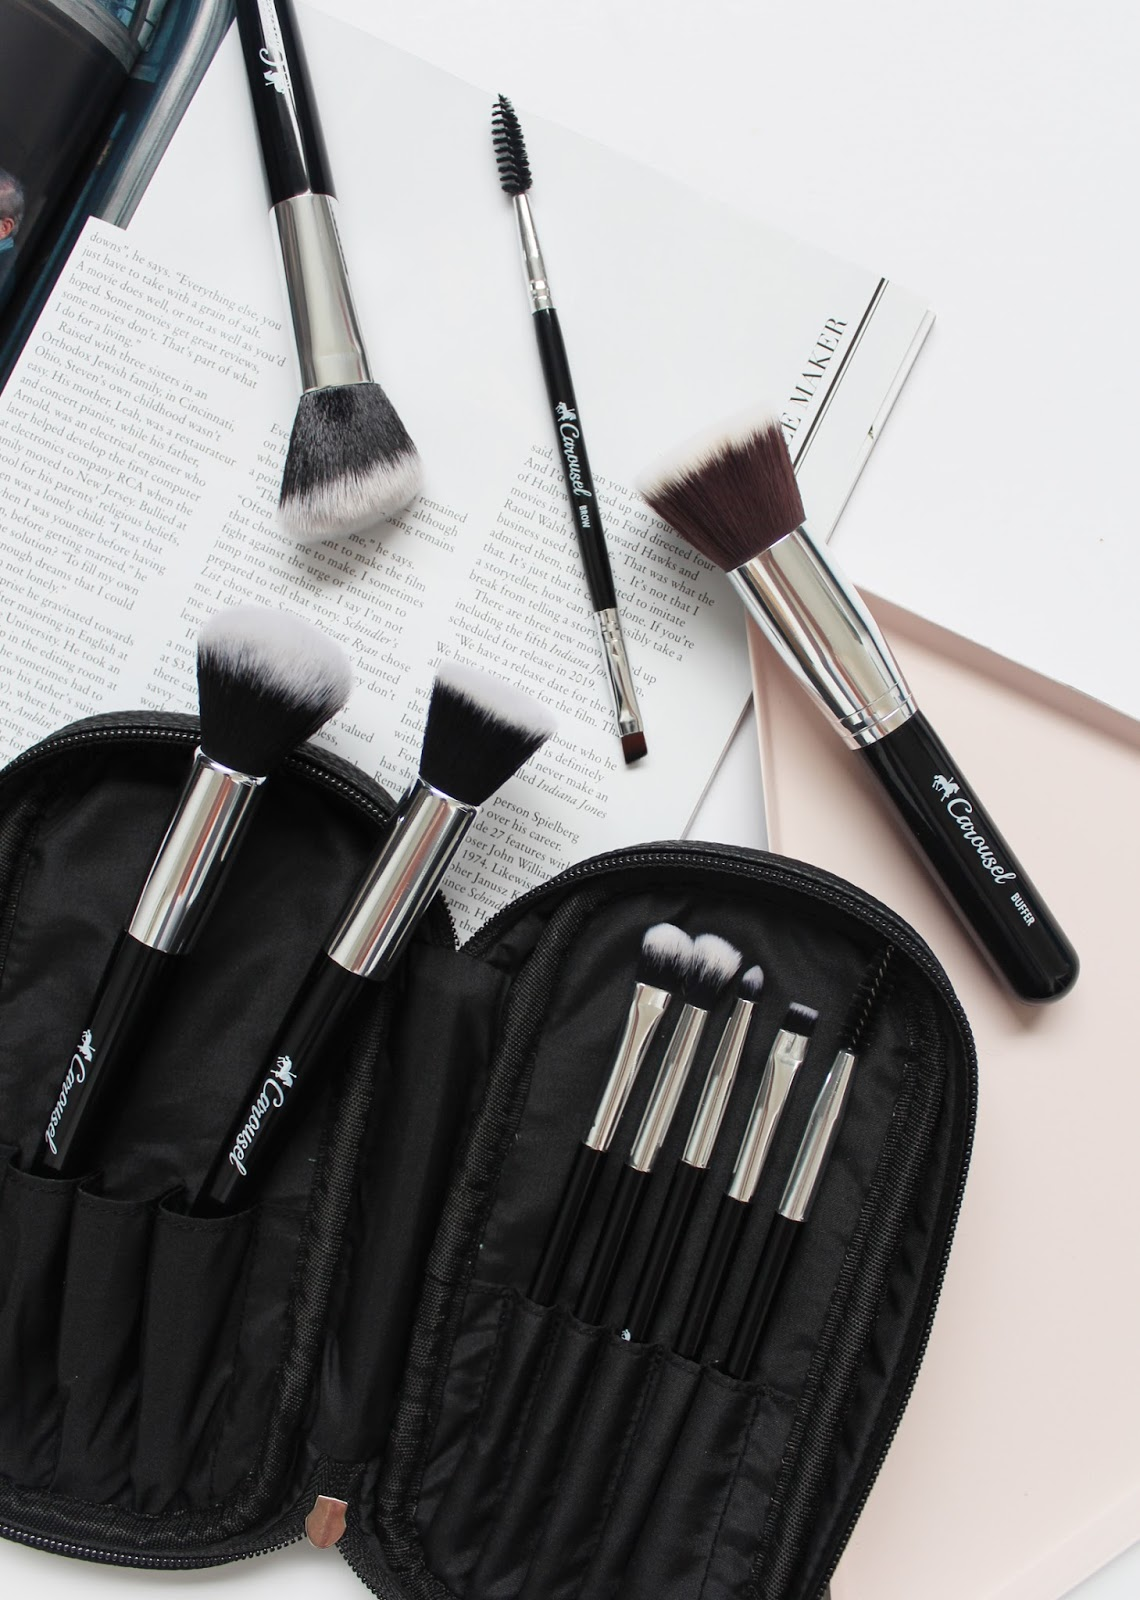 CAROUSEL COSMETICS | New Brush Set - CassandraMyee